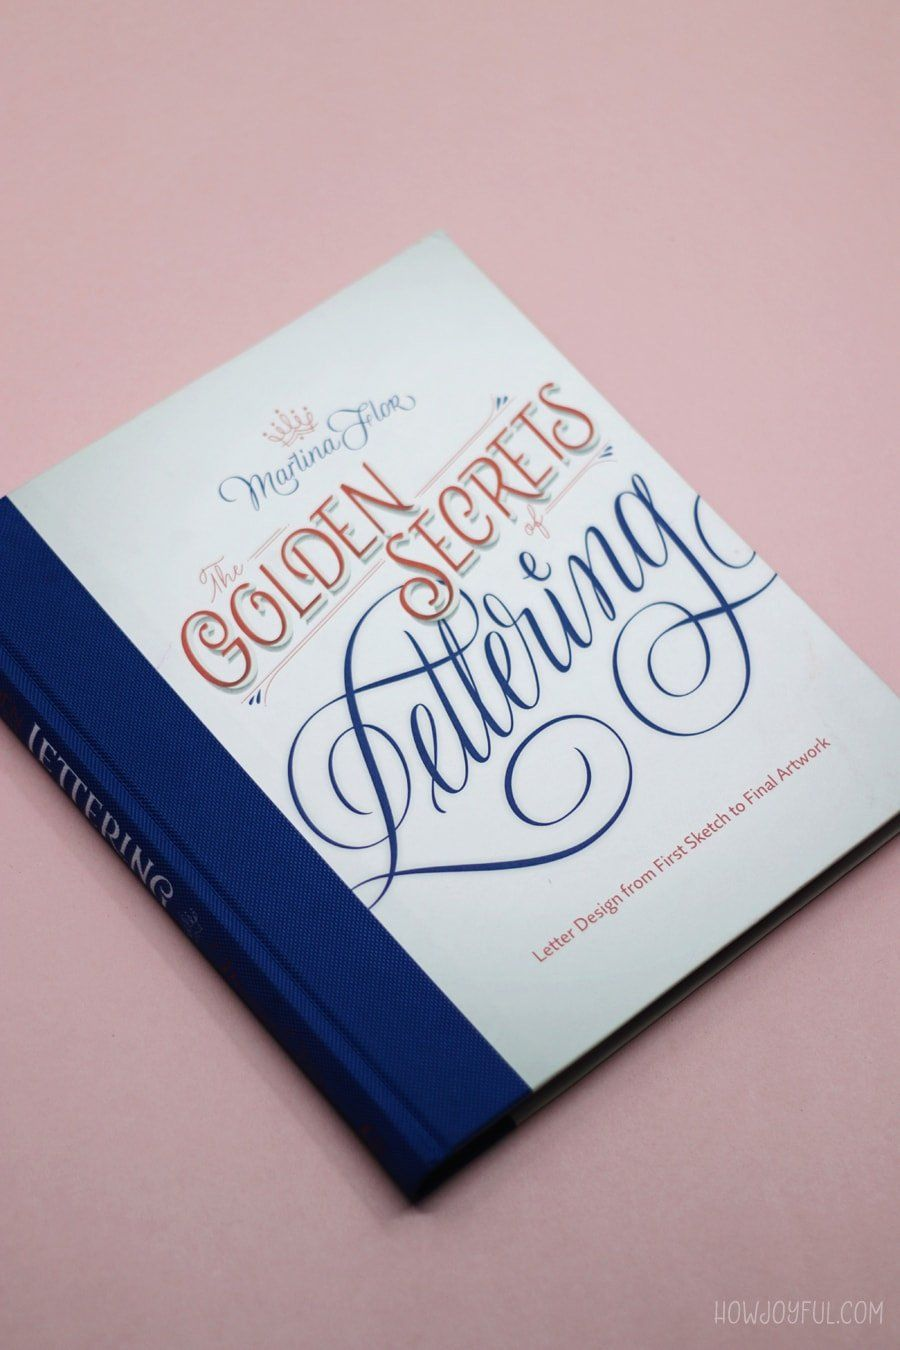 15 of best lettering calligraphy books inspire and